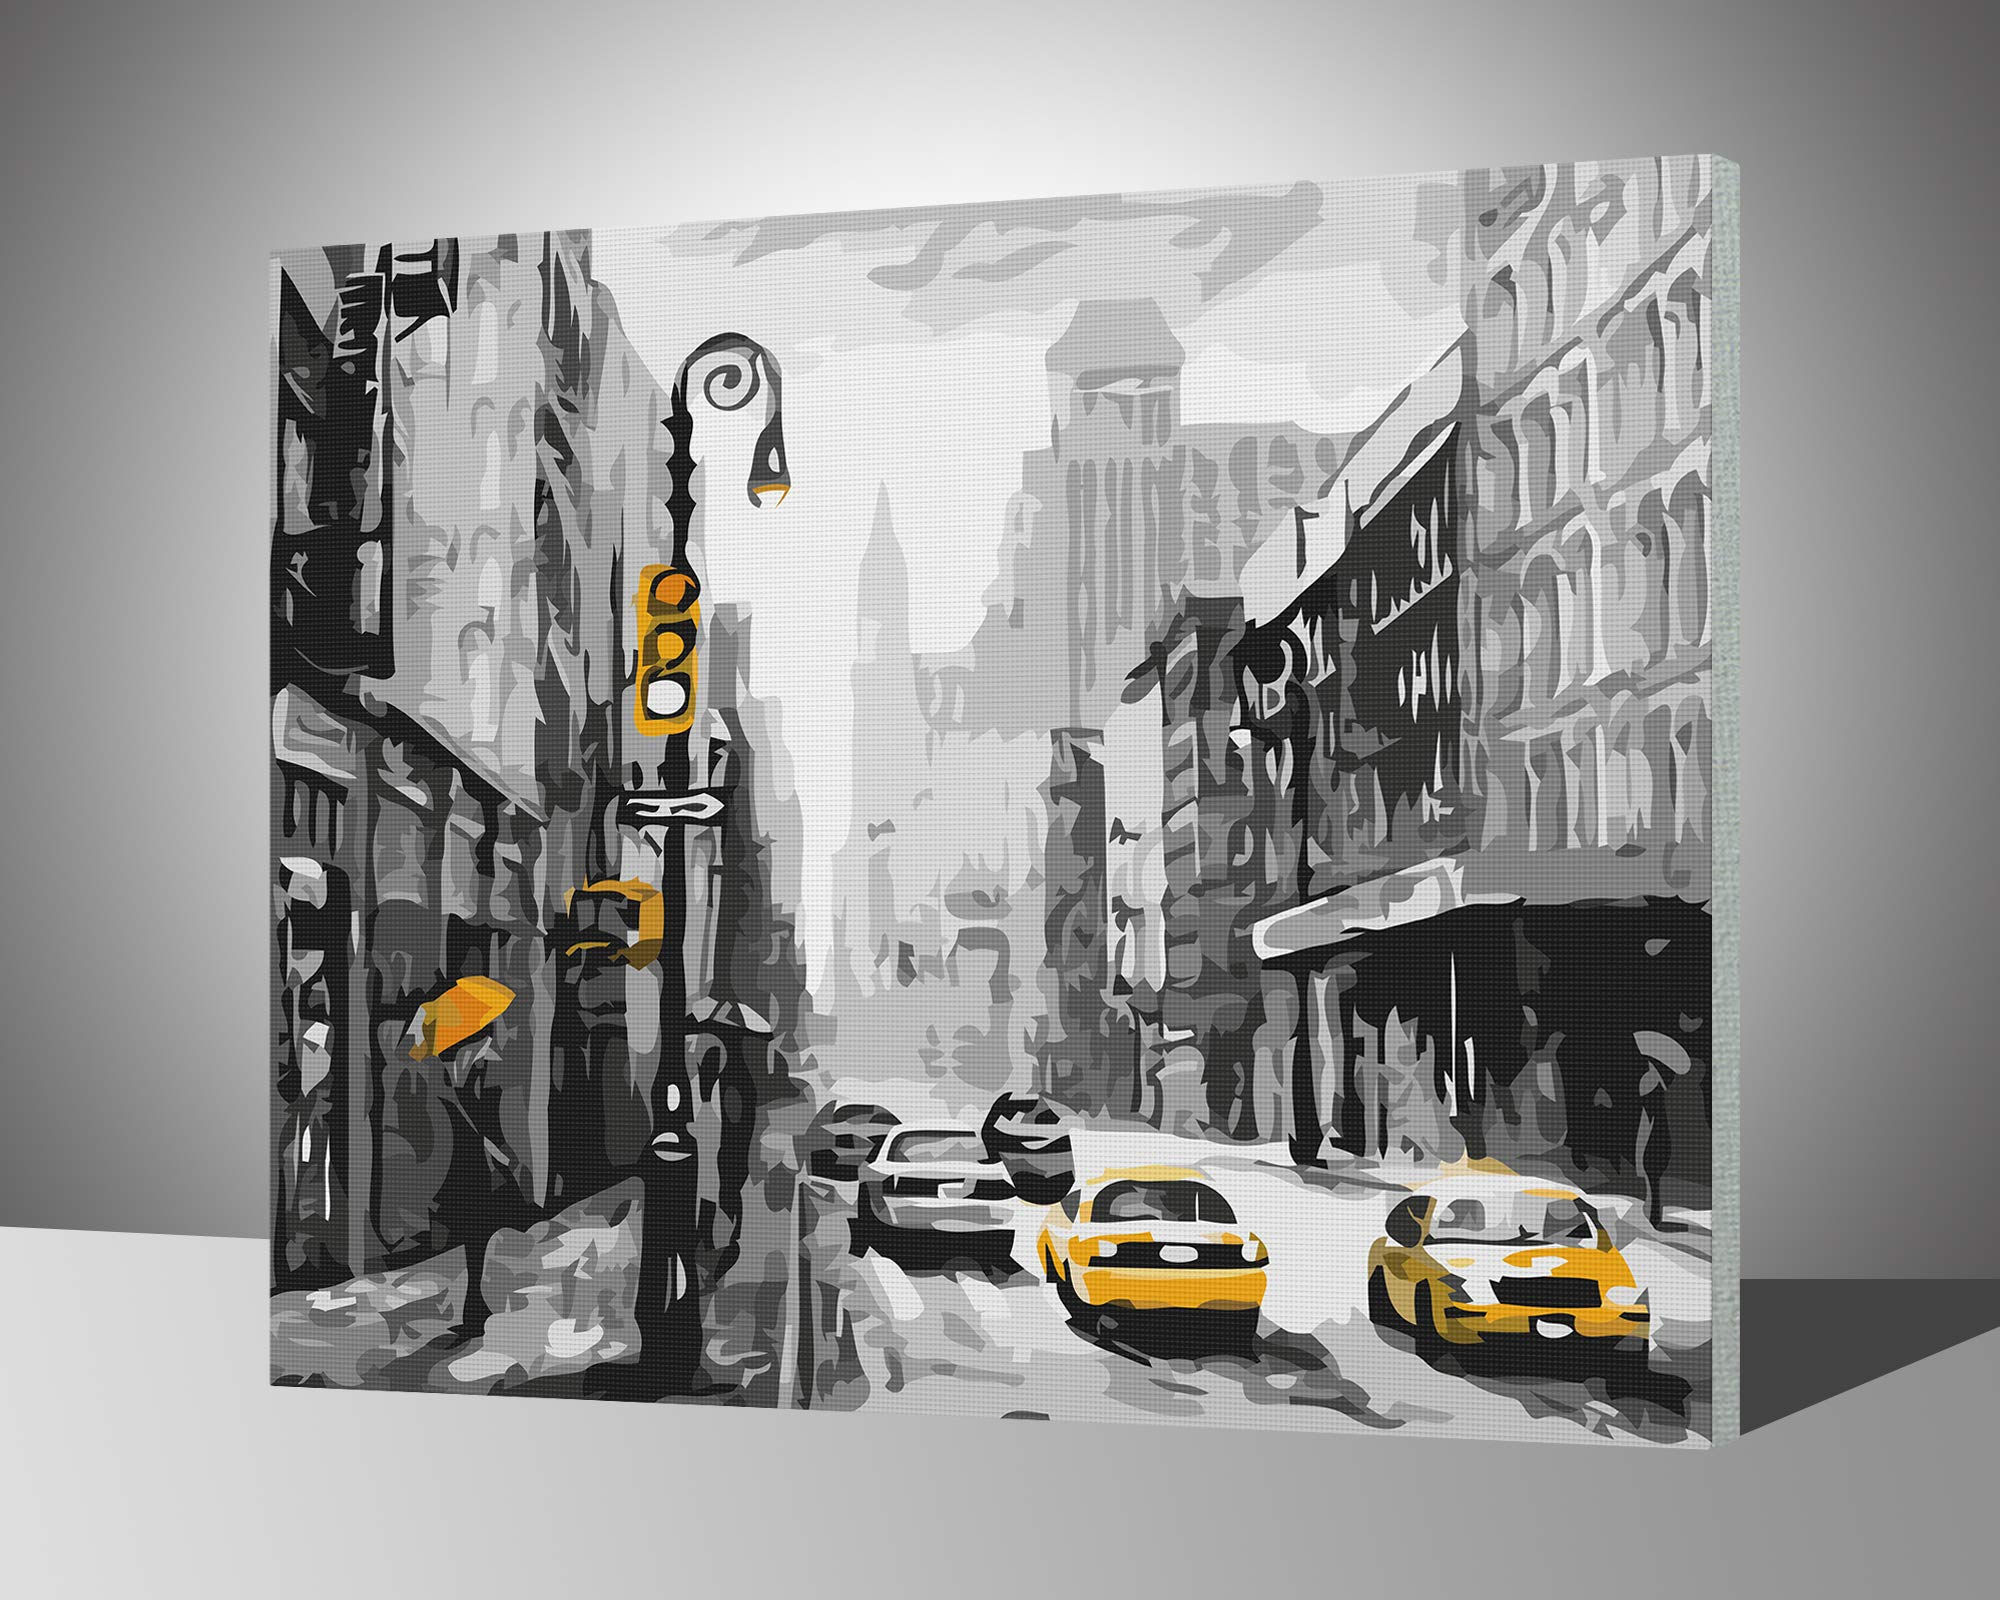 "Paint by Numbers for Adults with Frame by BANLANA, DIY Adult Paint by Number Kits for Beginners on Canvas Wooden Framed 16"" by 20"" (Street View of New York, Framed)"